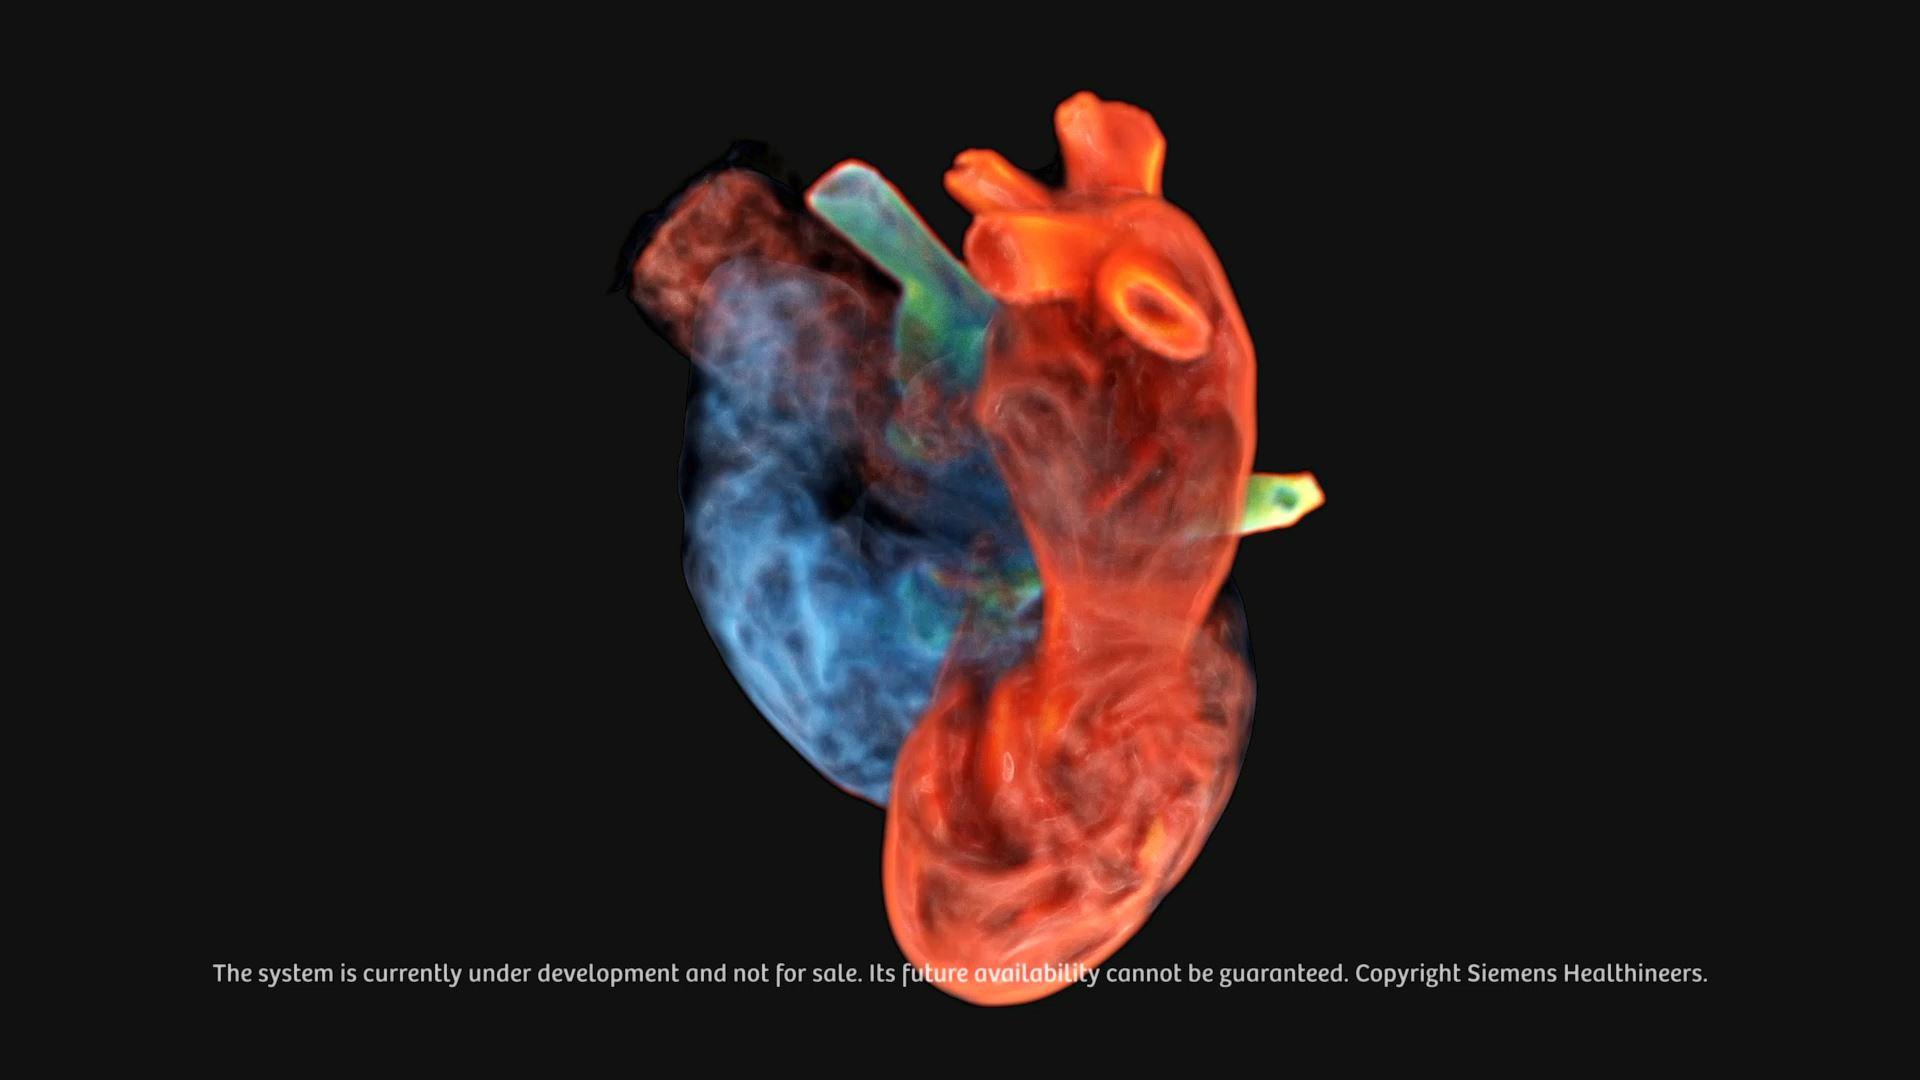 Video footage of Digital Twin of the heart